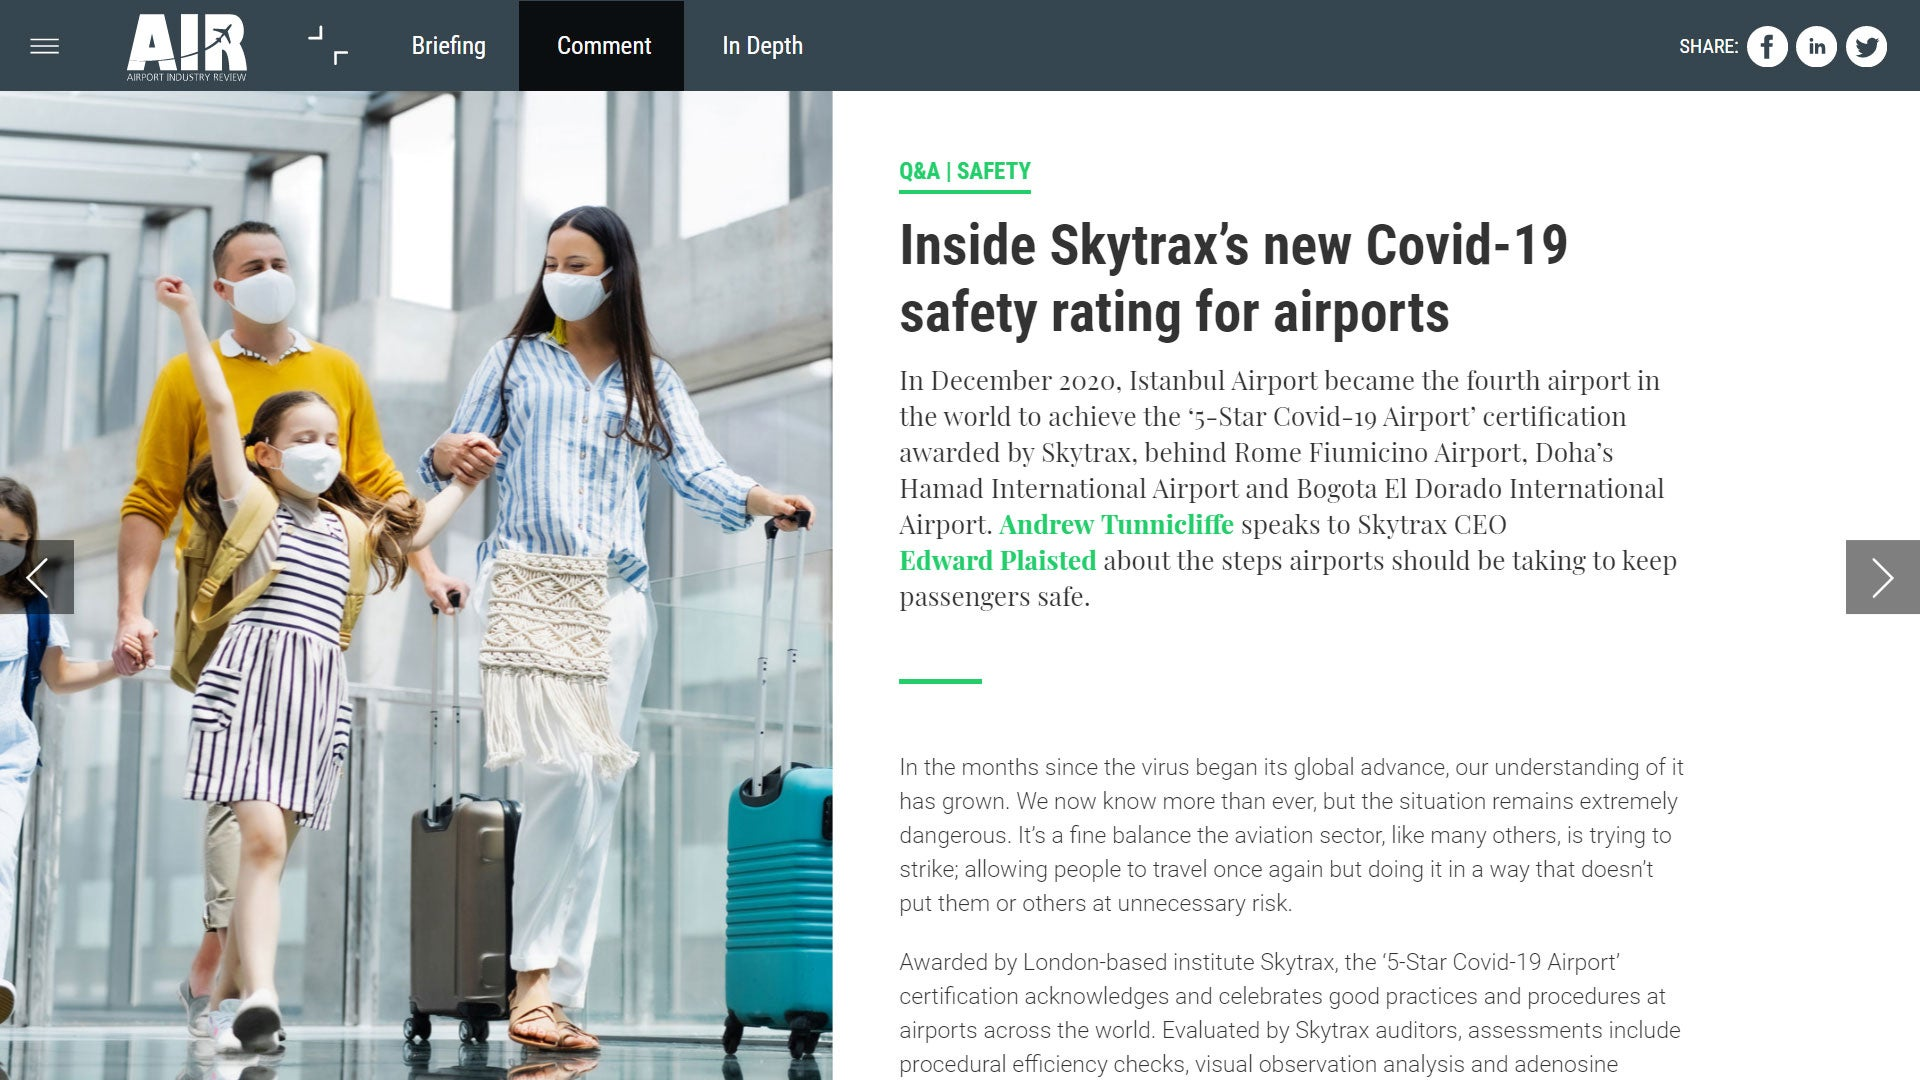 Covid-19 safety at airports